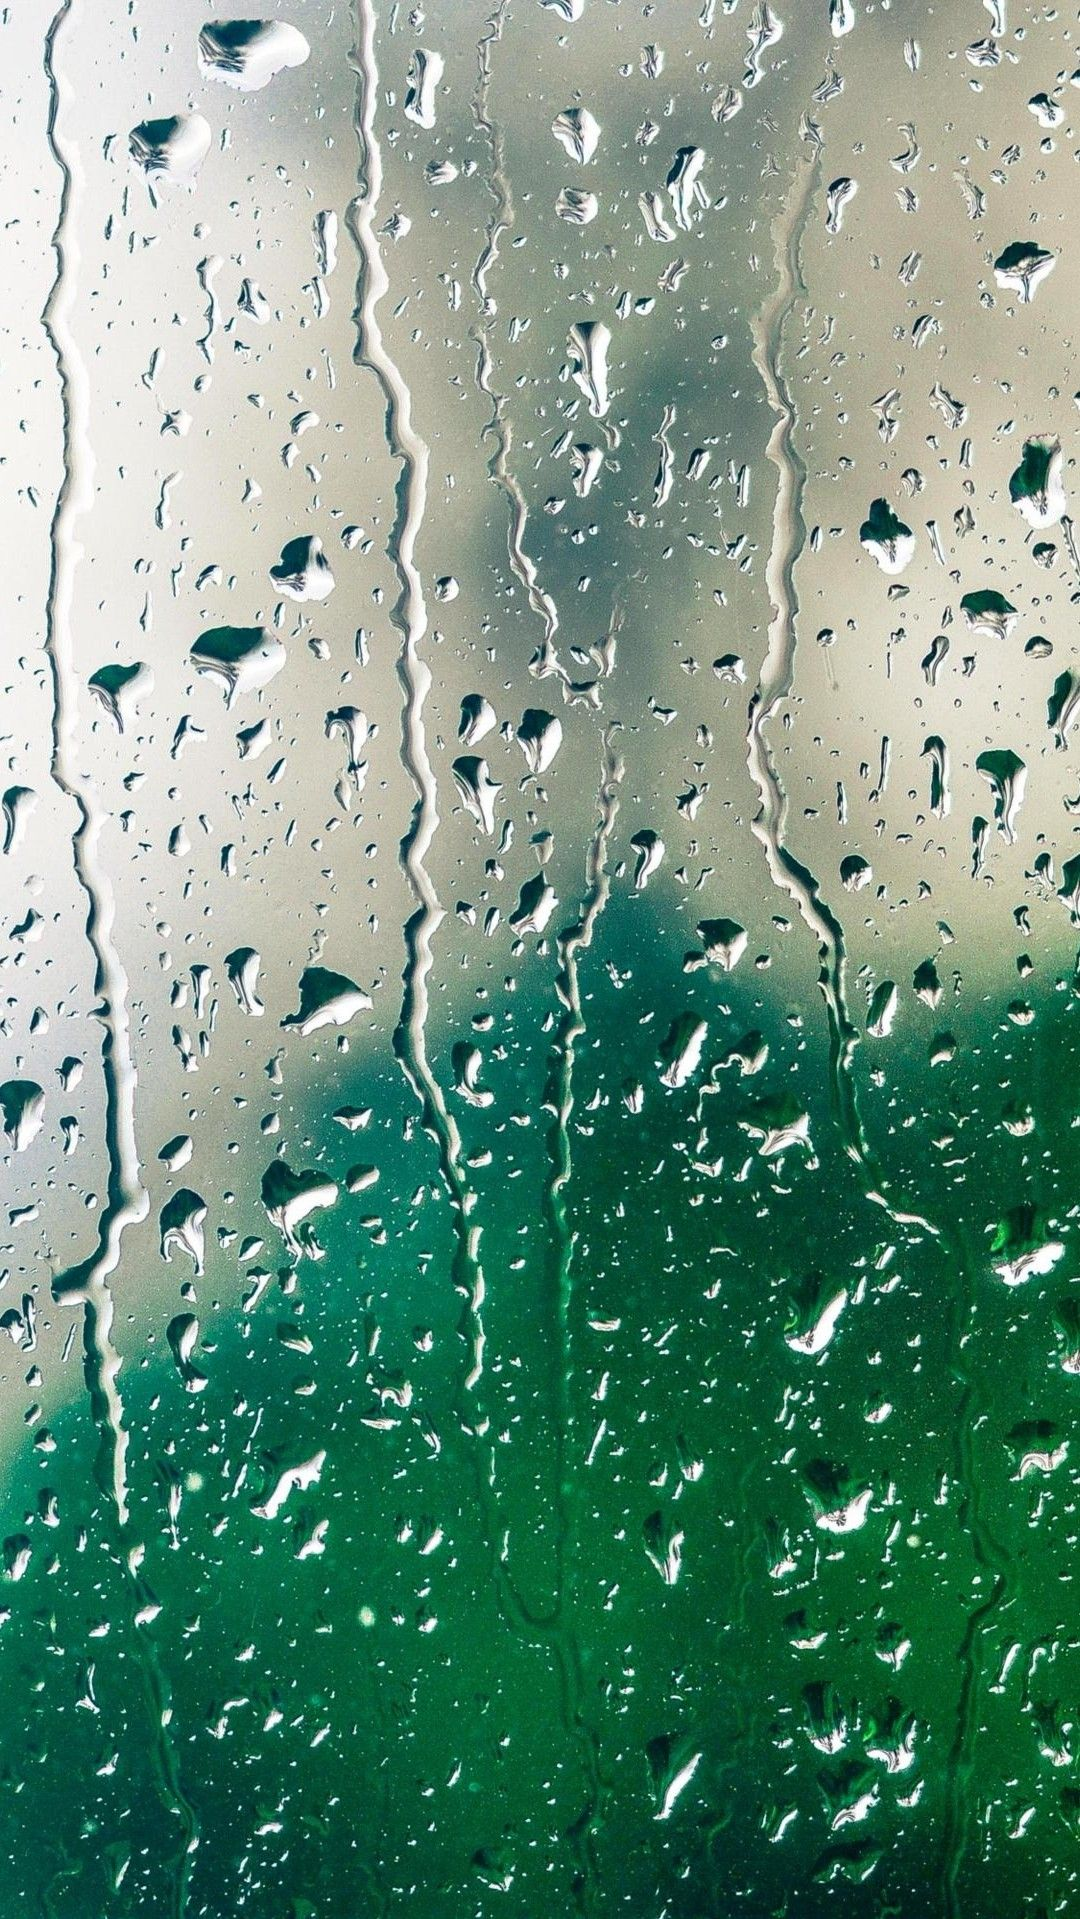 Wallpaper Of Water Drops With Lighting Reflections On Window